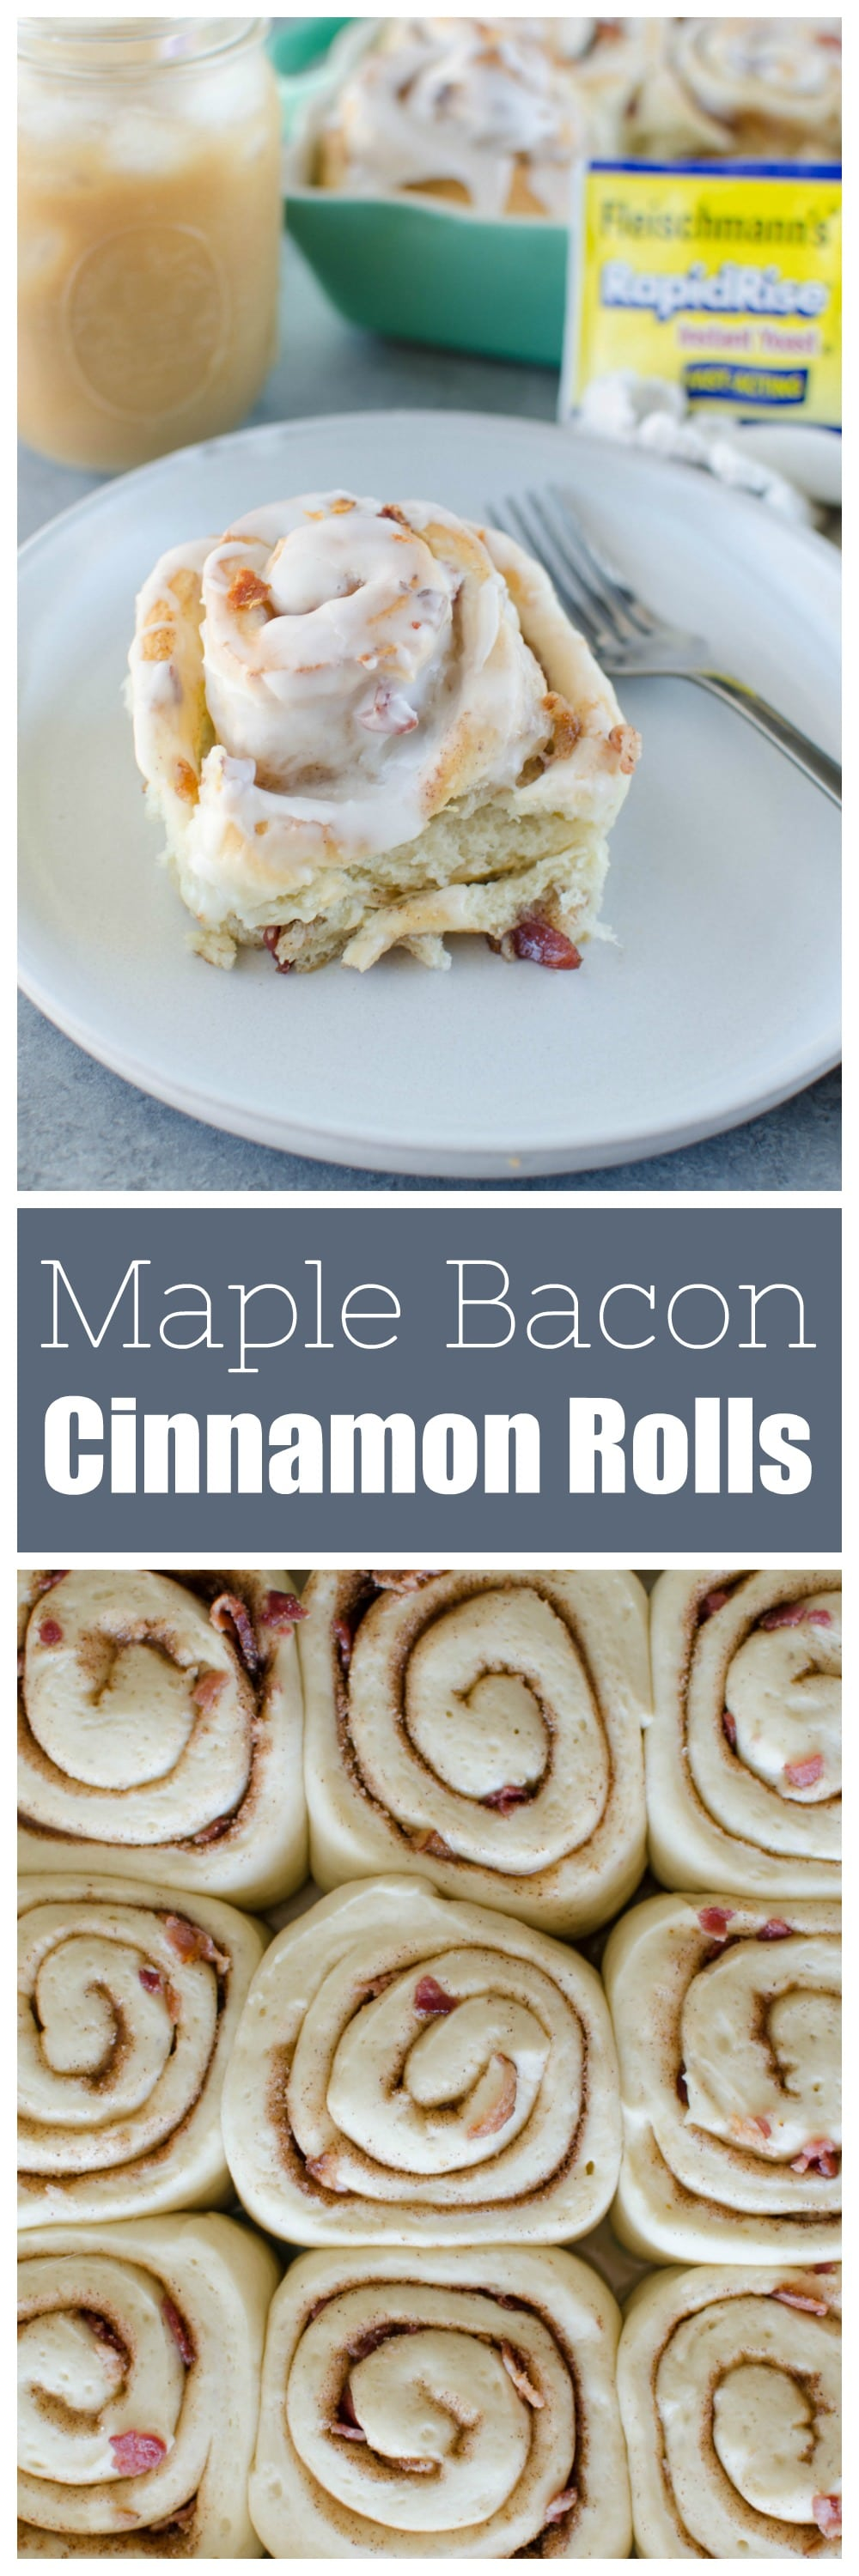 Maple Bacon Cinnamon Rolls - easy cinnamon roll dough filled with cinnamon sugar, maple syrup, and crispy bacon. Topped with frosting and more bacon! The perfect sweet and salty treat!